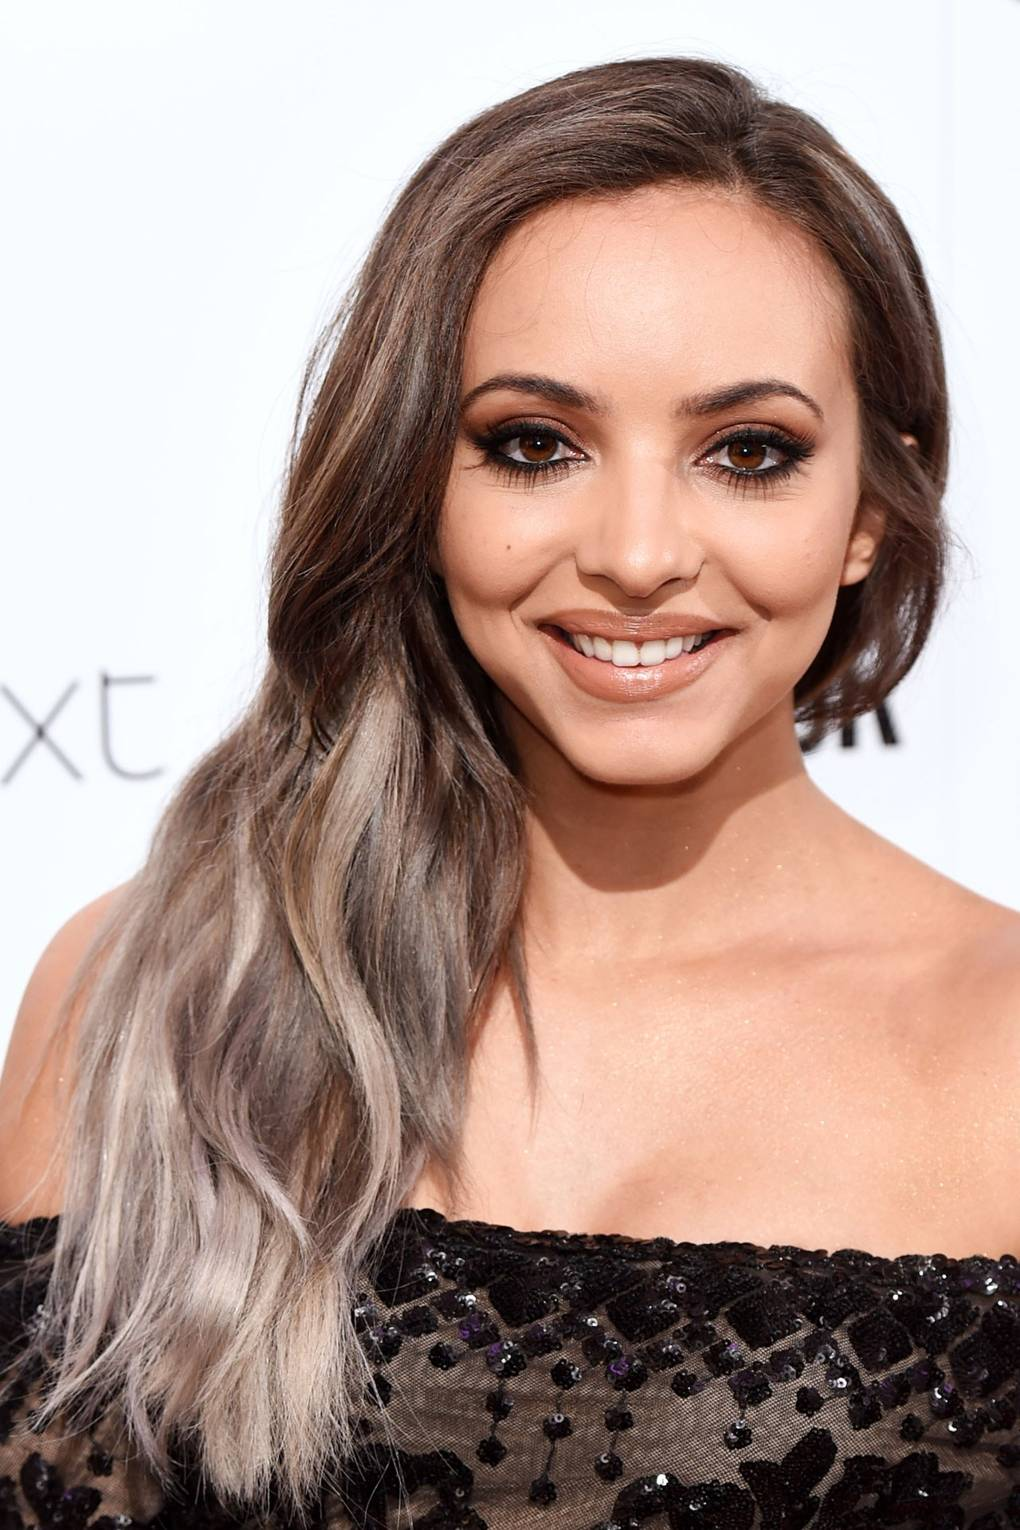 2019 Jade Thirlwall naked (38 foto and video), Tits, Sideboobs, Selfie, braless 2018